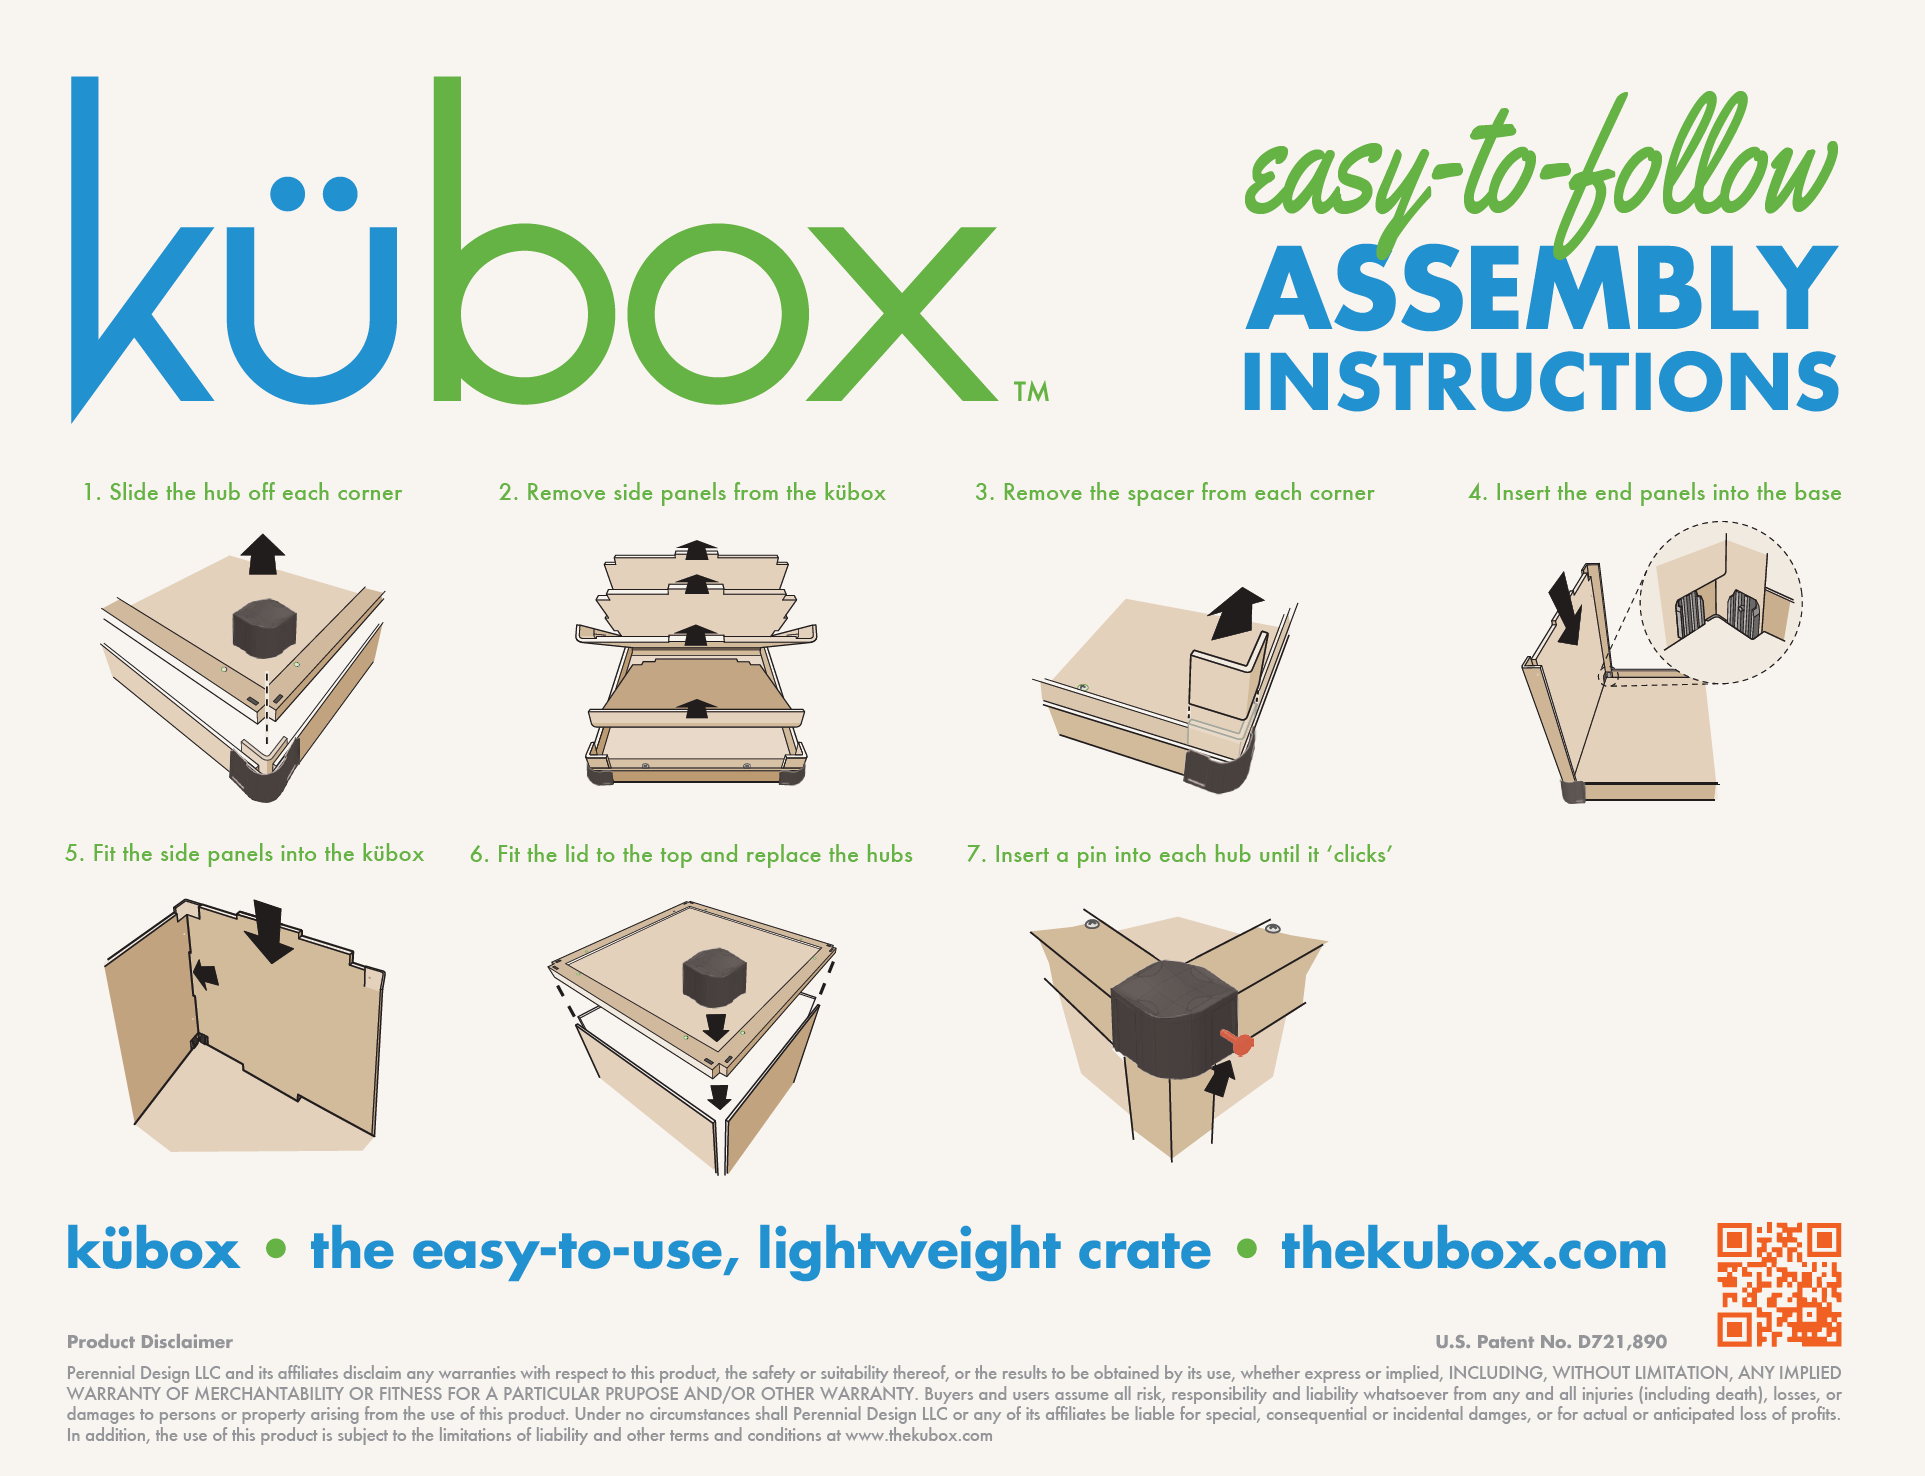 Kubox assembly instructions